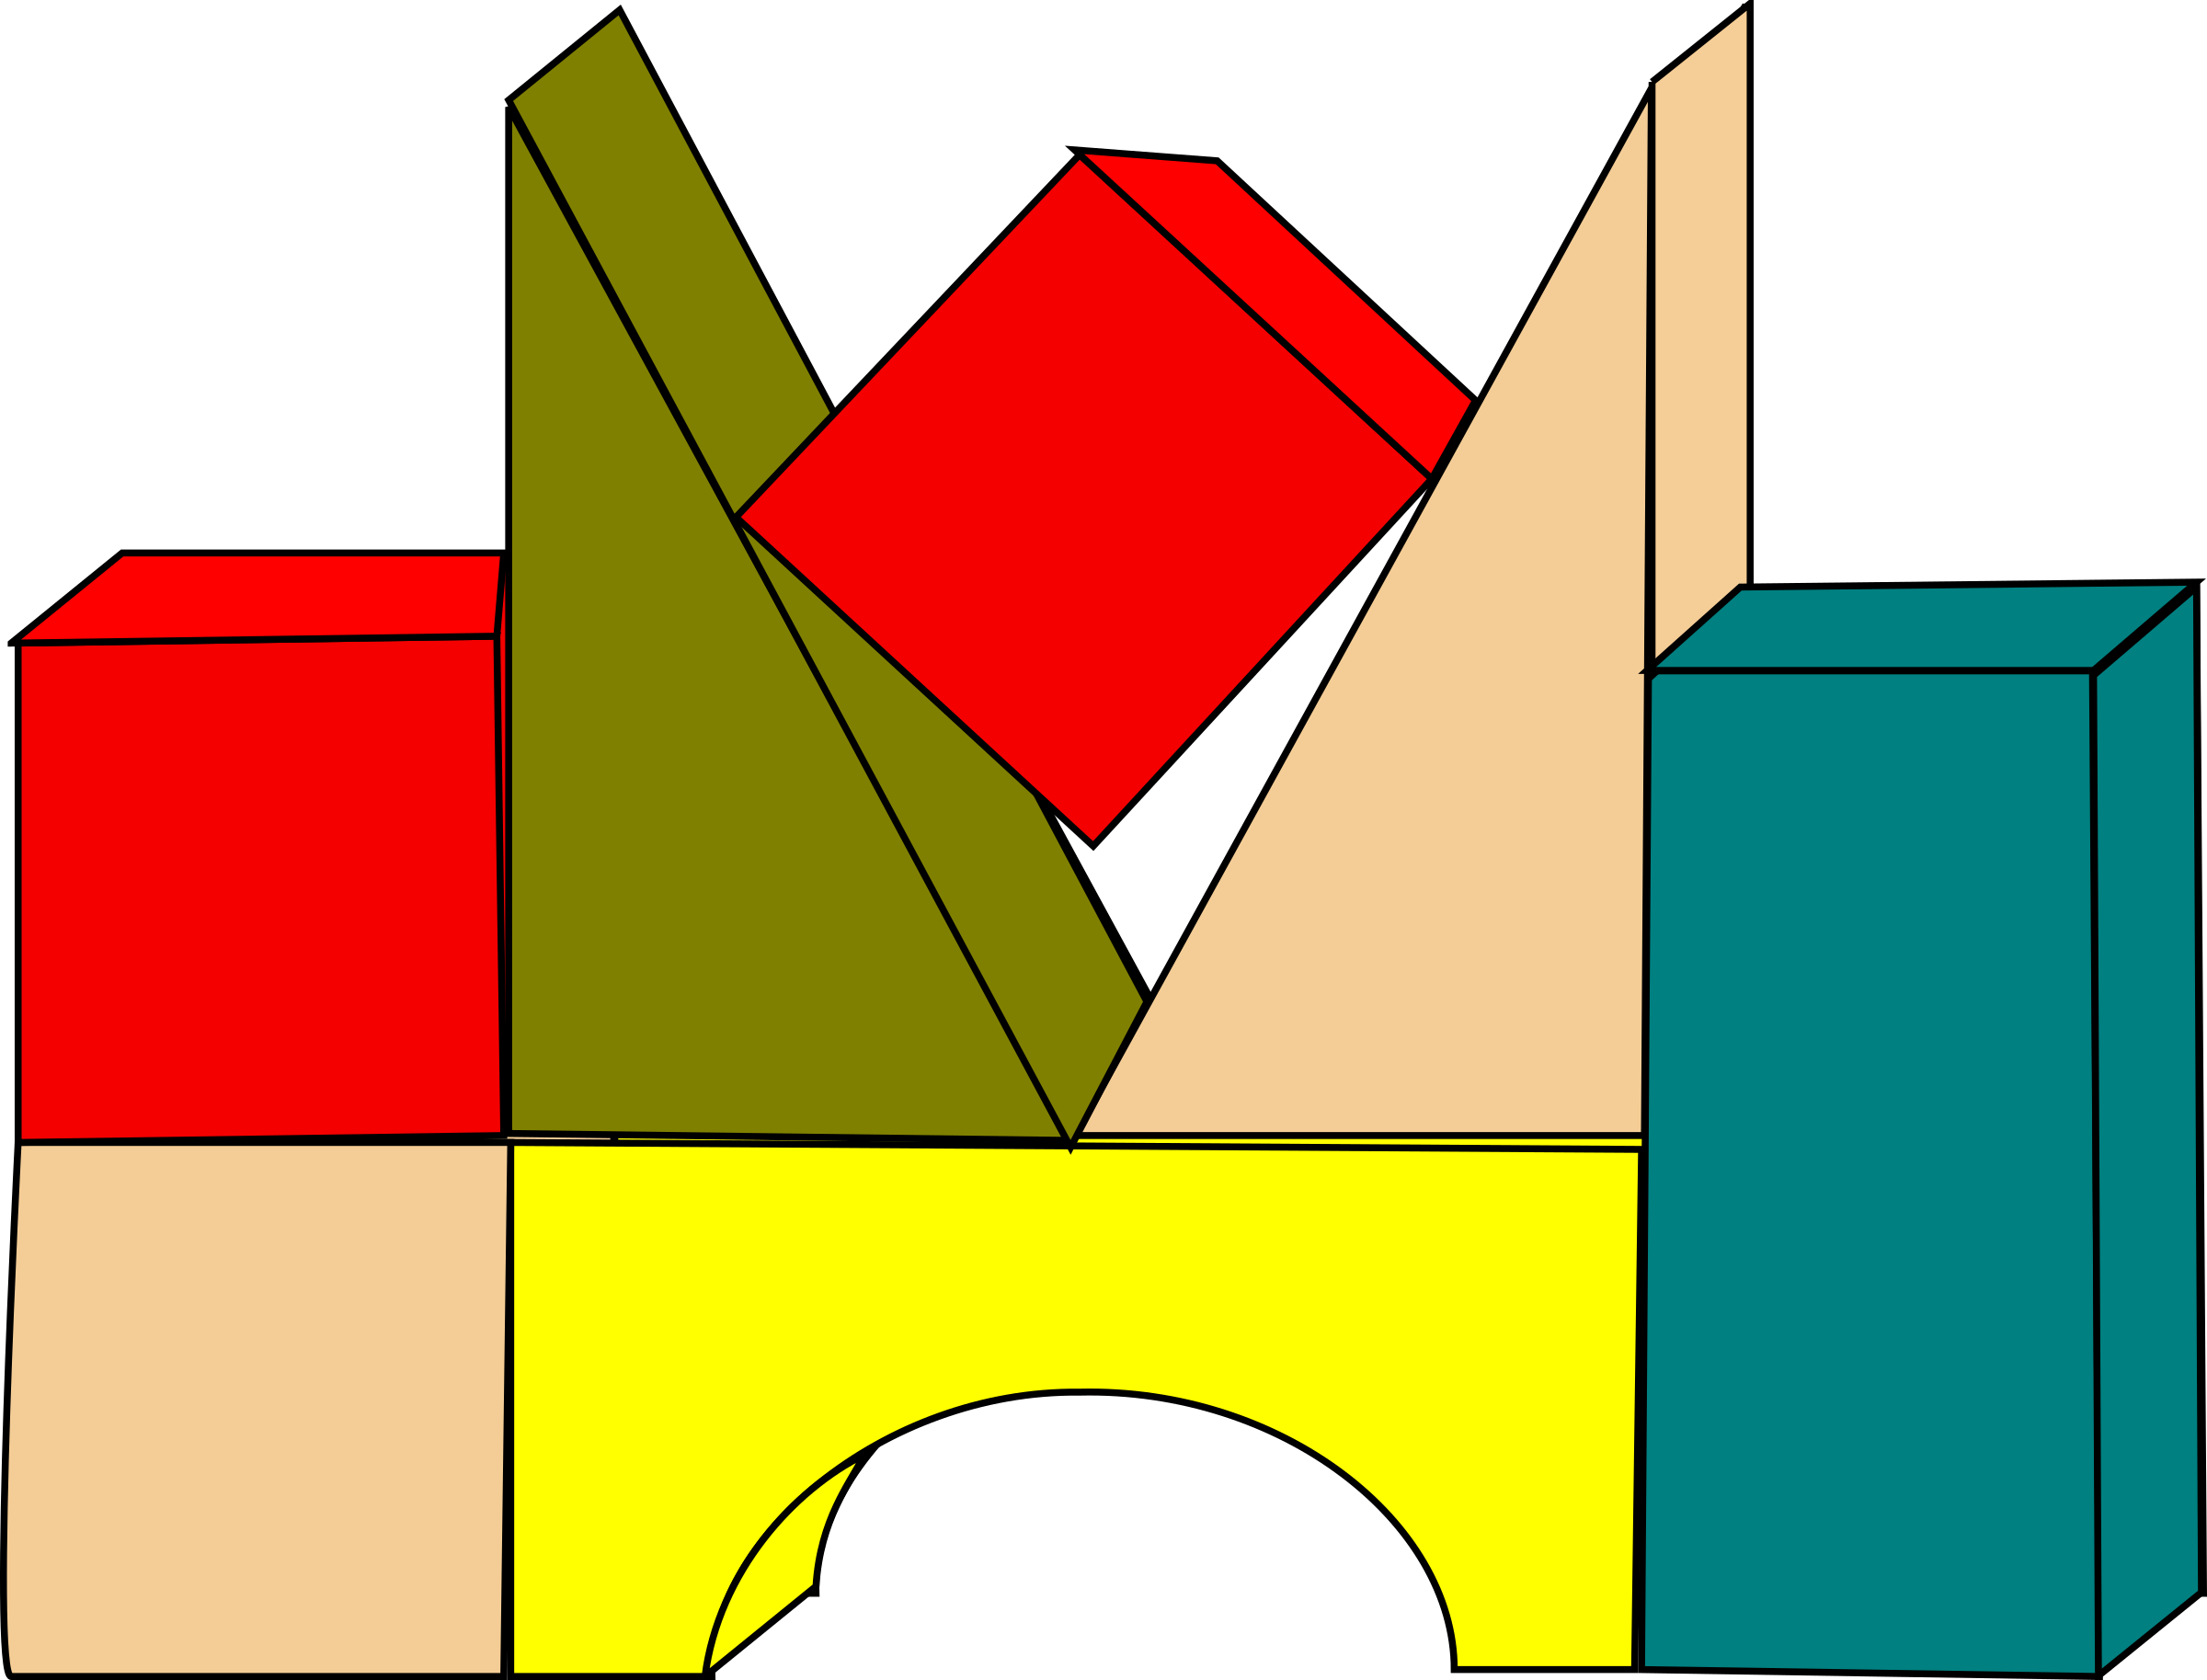 Building Blocks by KAMC